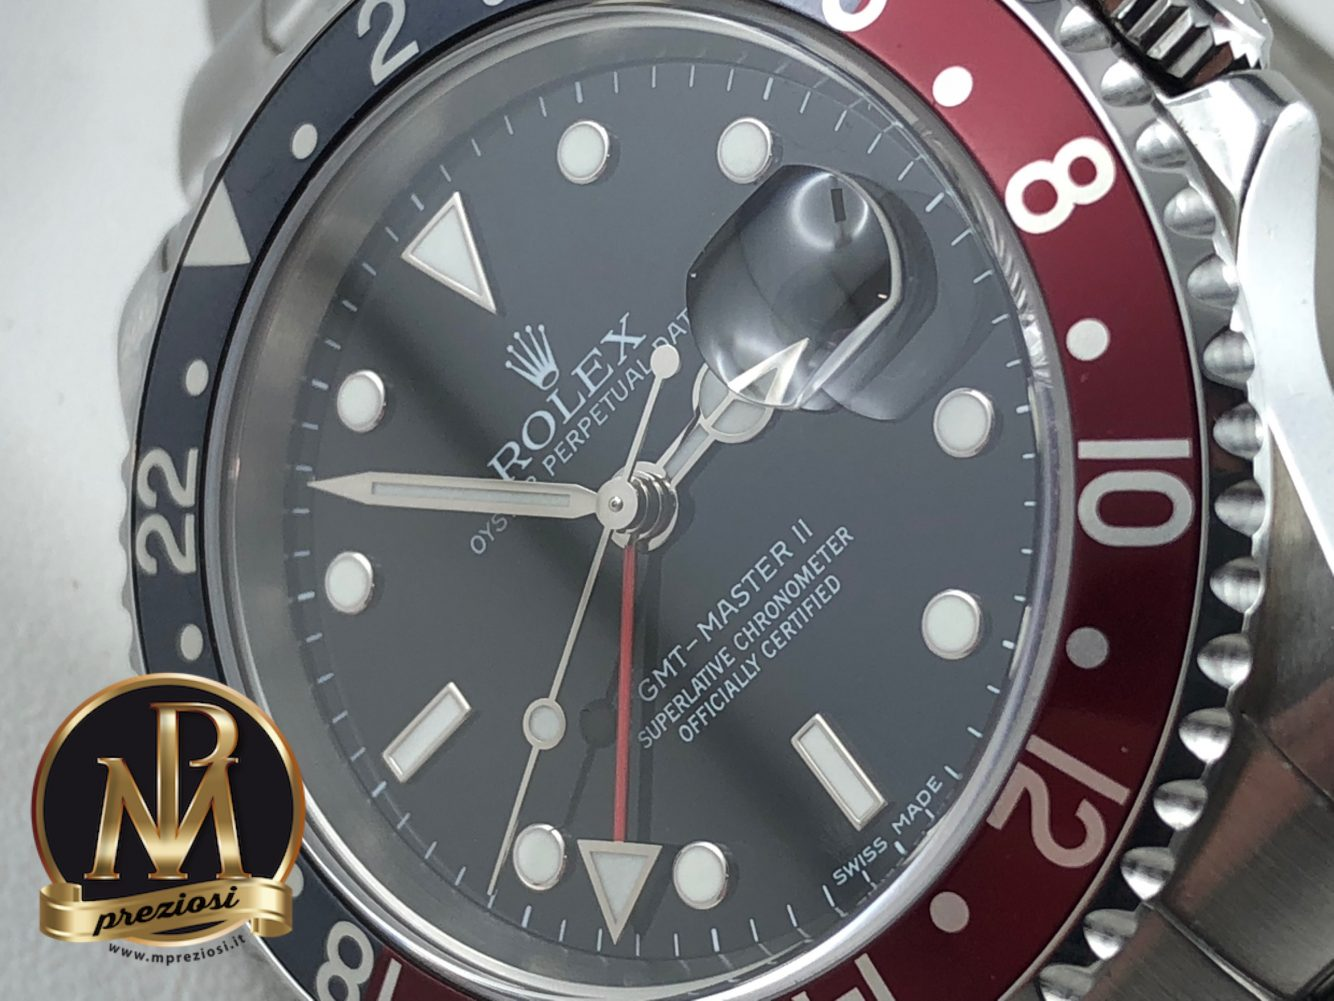 Rolex-gmt-master-2-stick-dial-3186-mp-preziosi